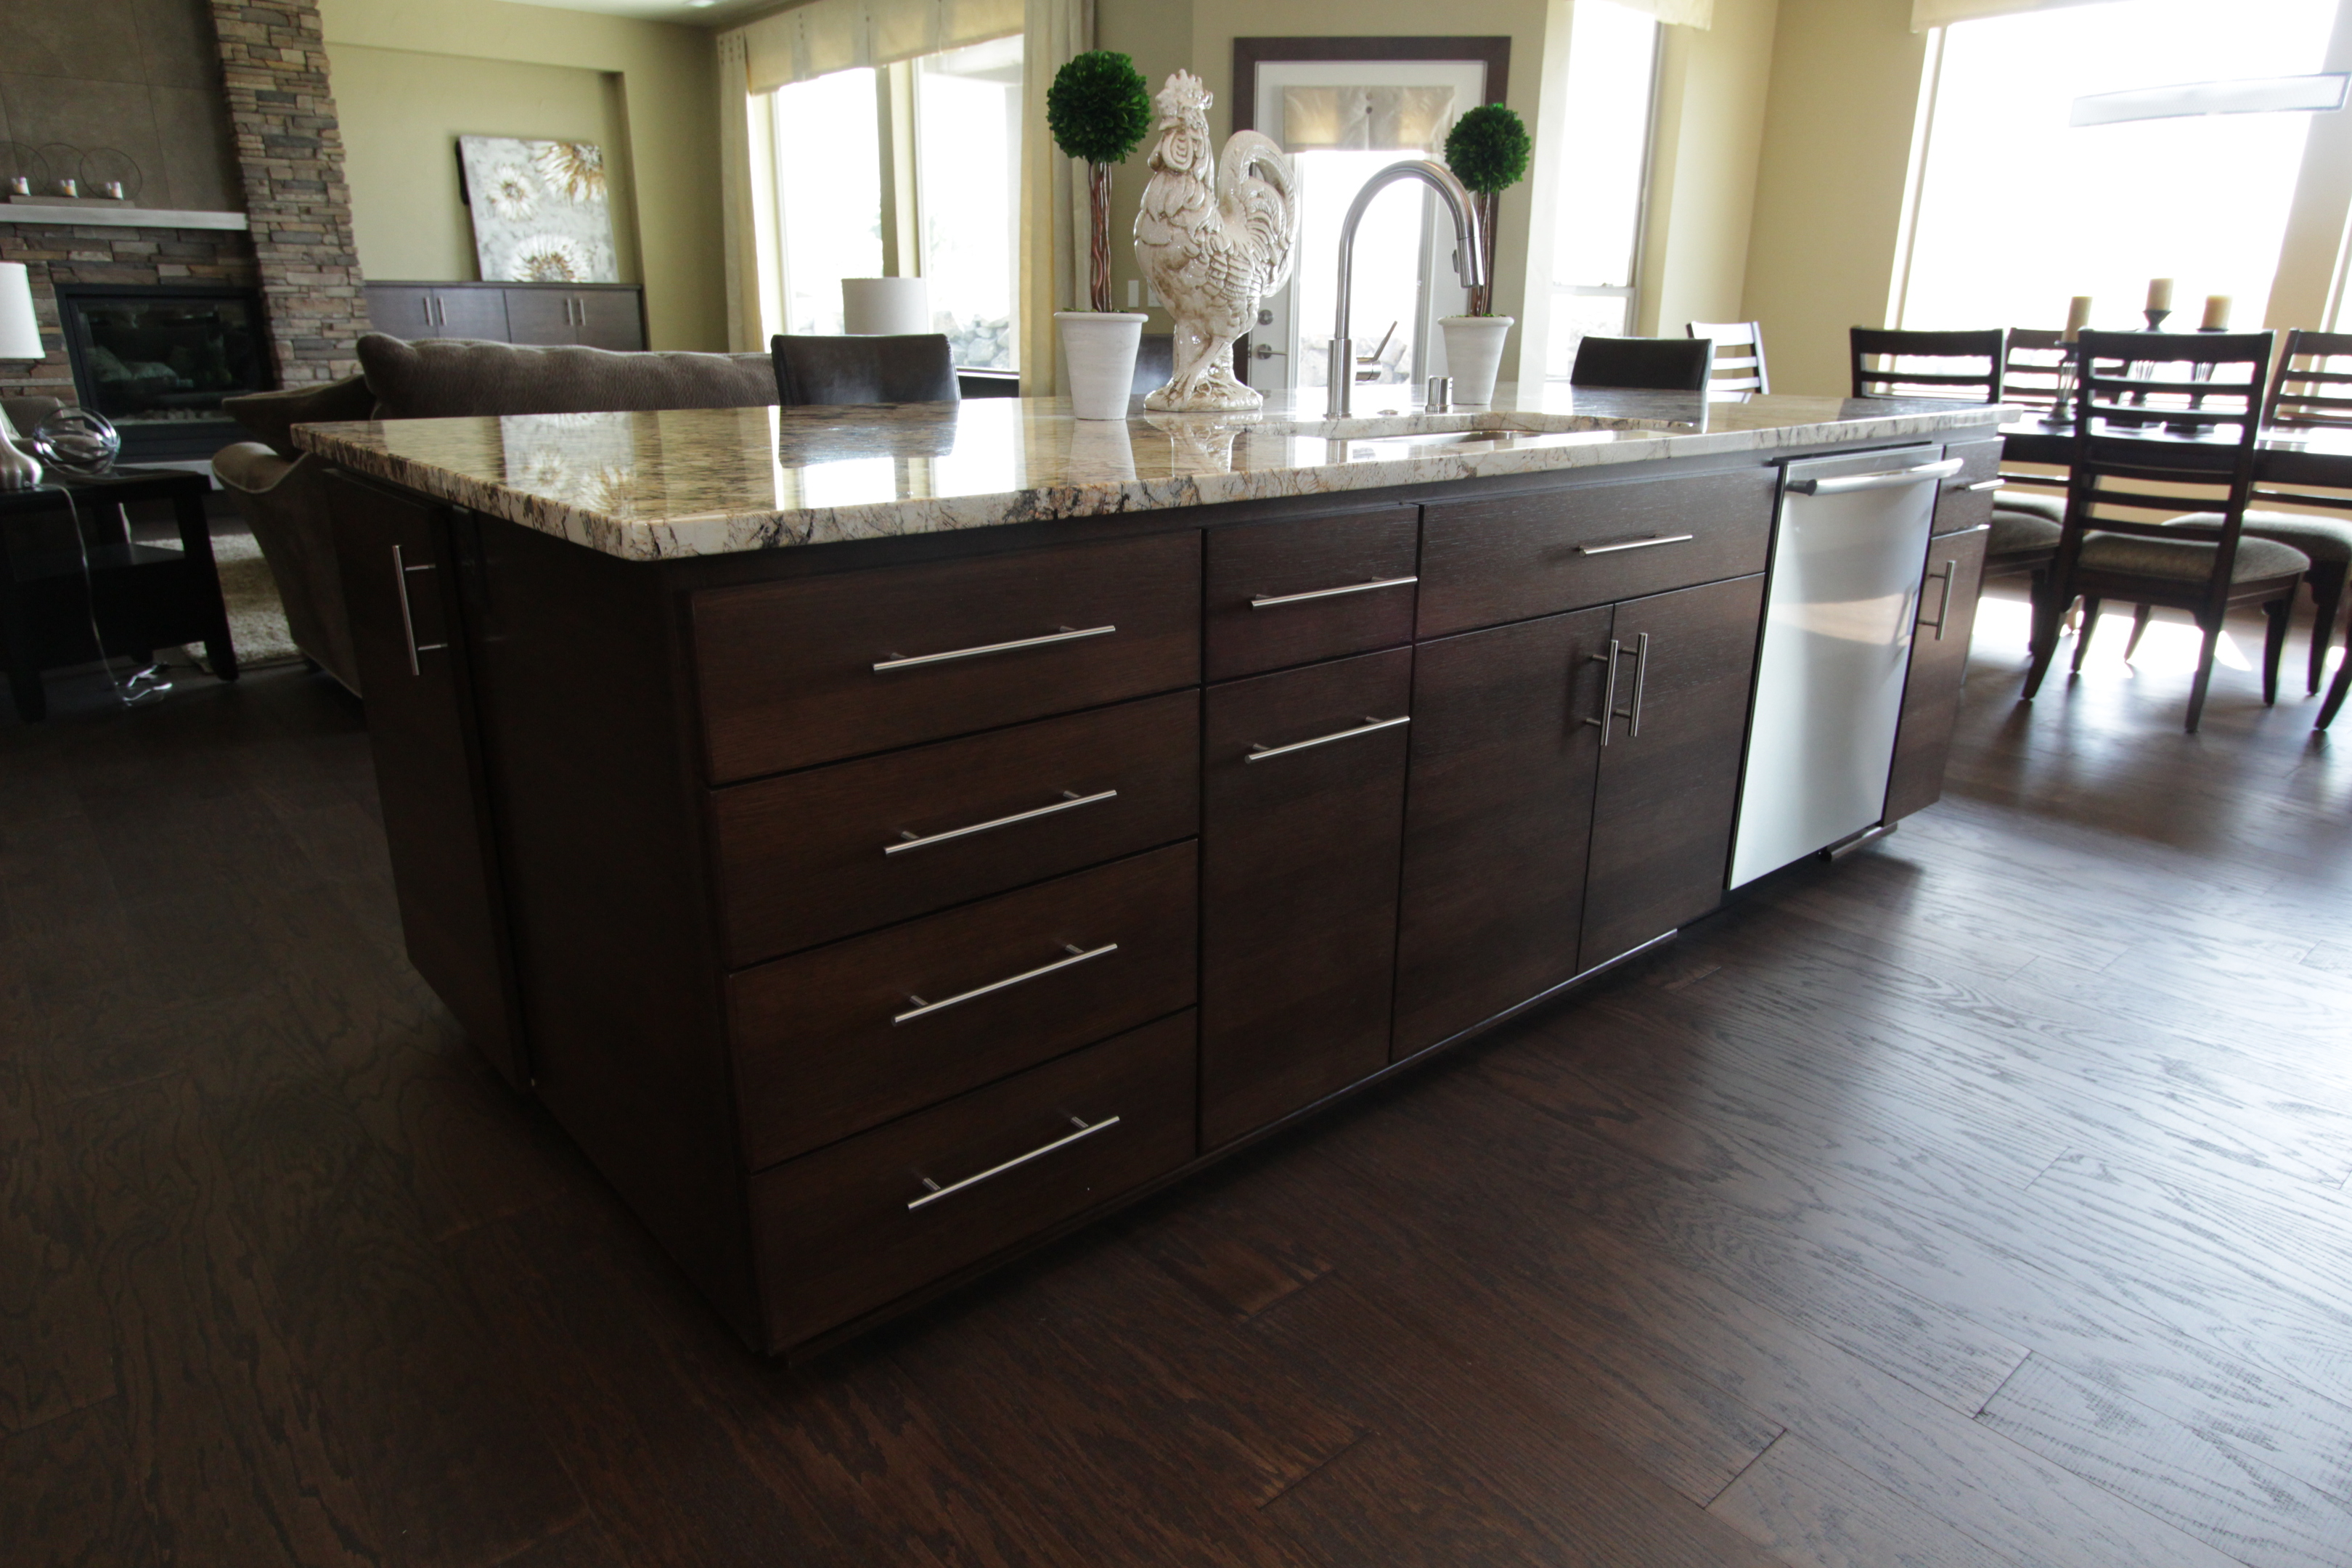 Thumb Kitchen Contemporary Style Quartersawn Walnut Banded Door Dark Color  Bank Of Drawers Horizontal Grain Full